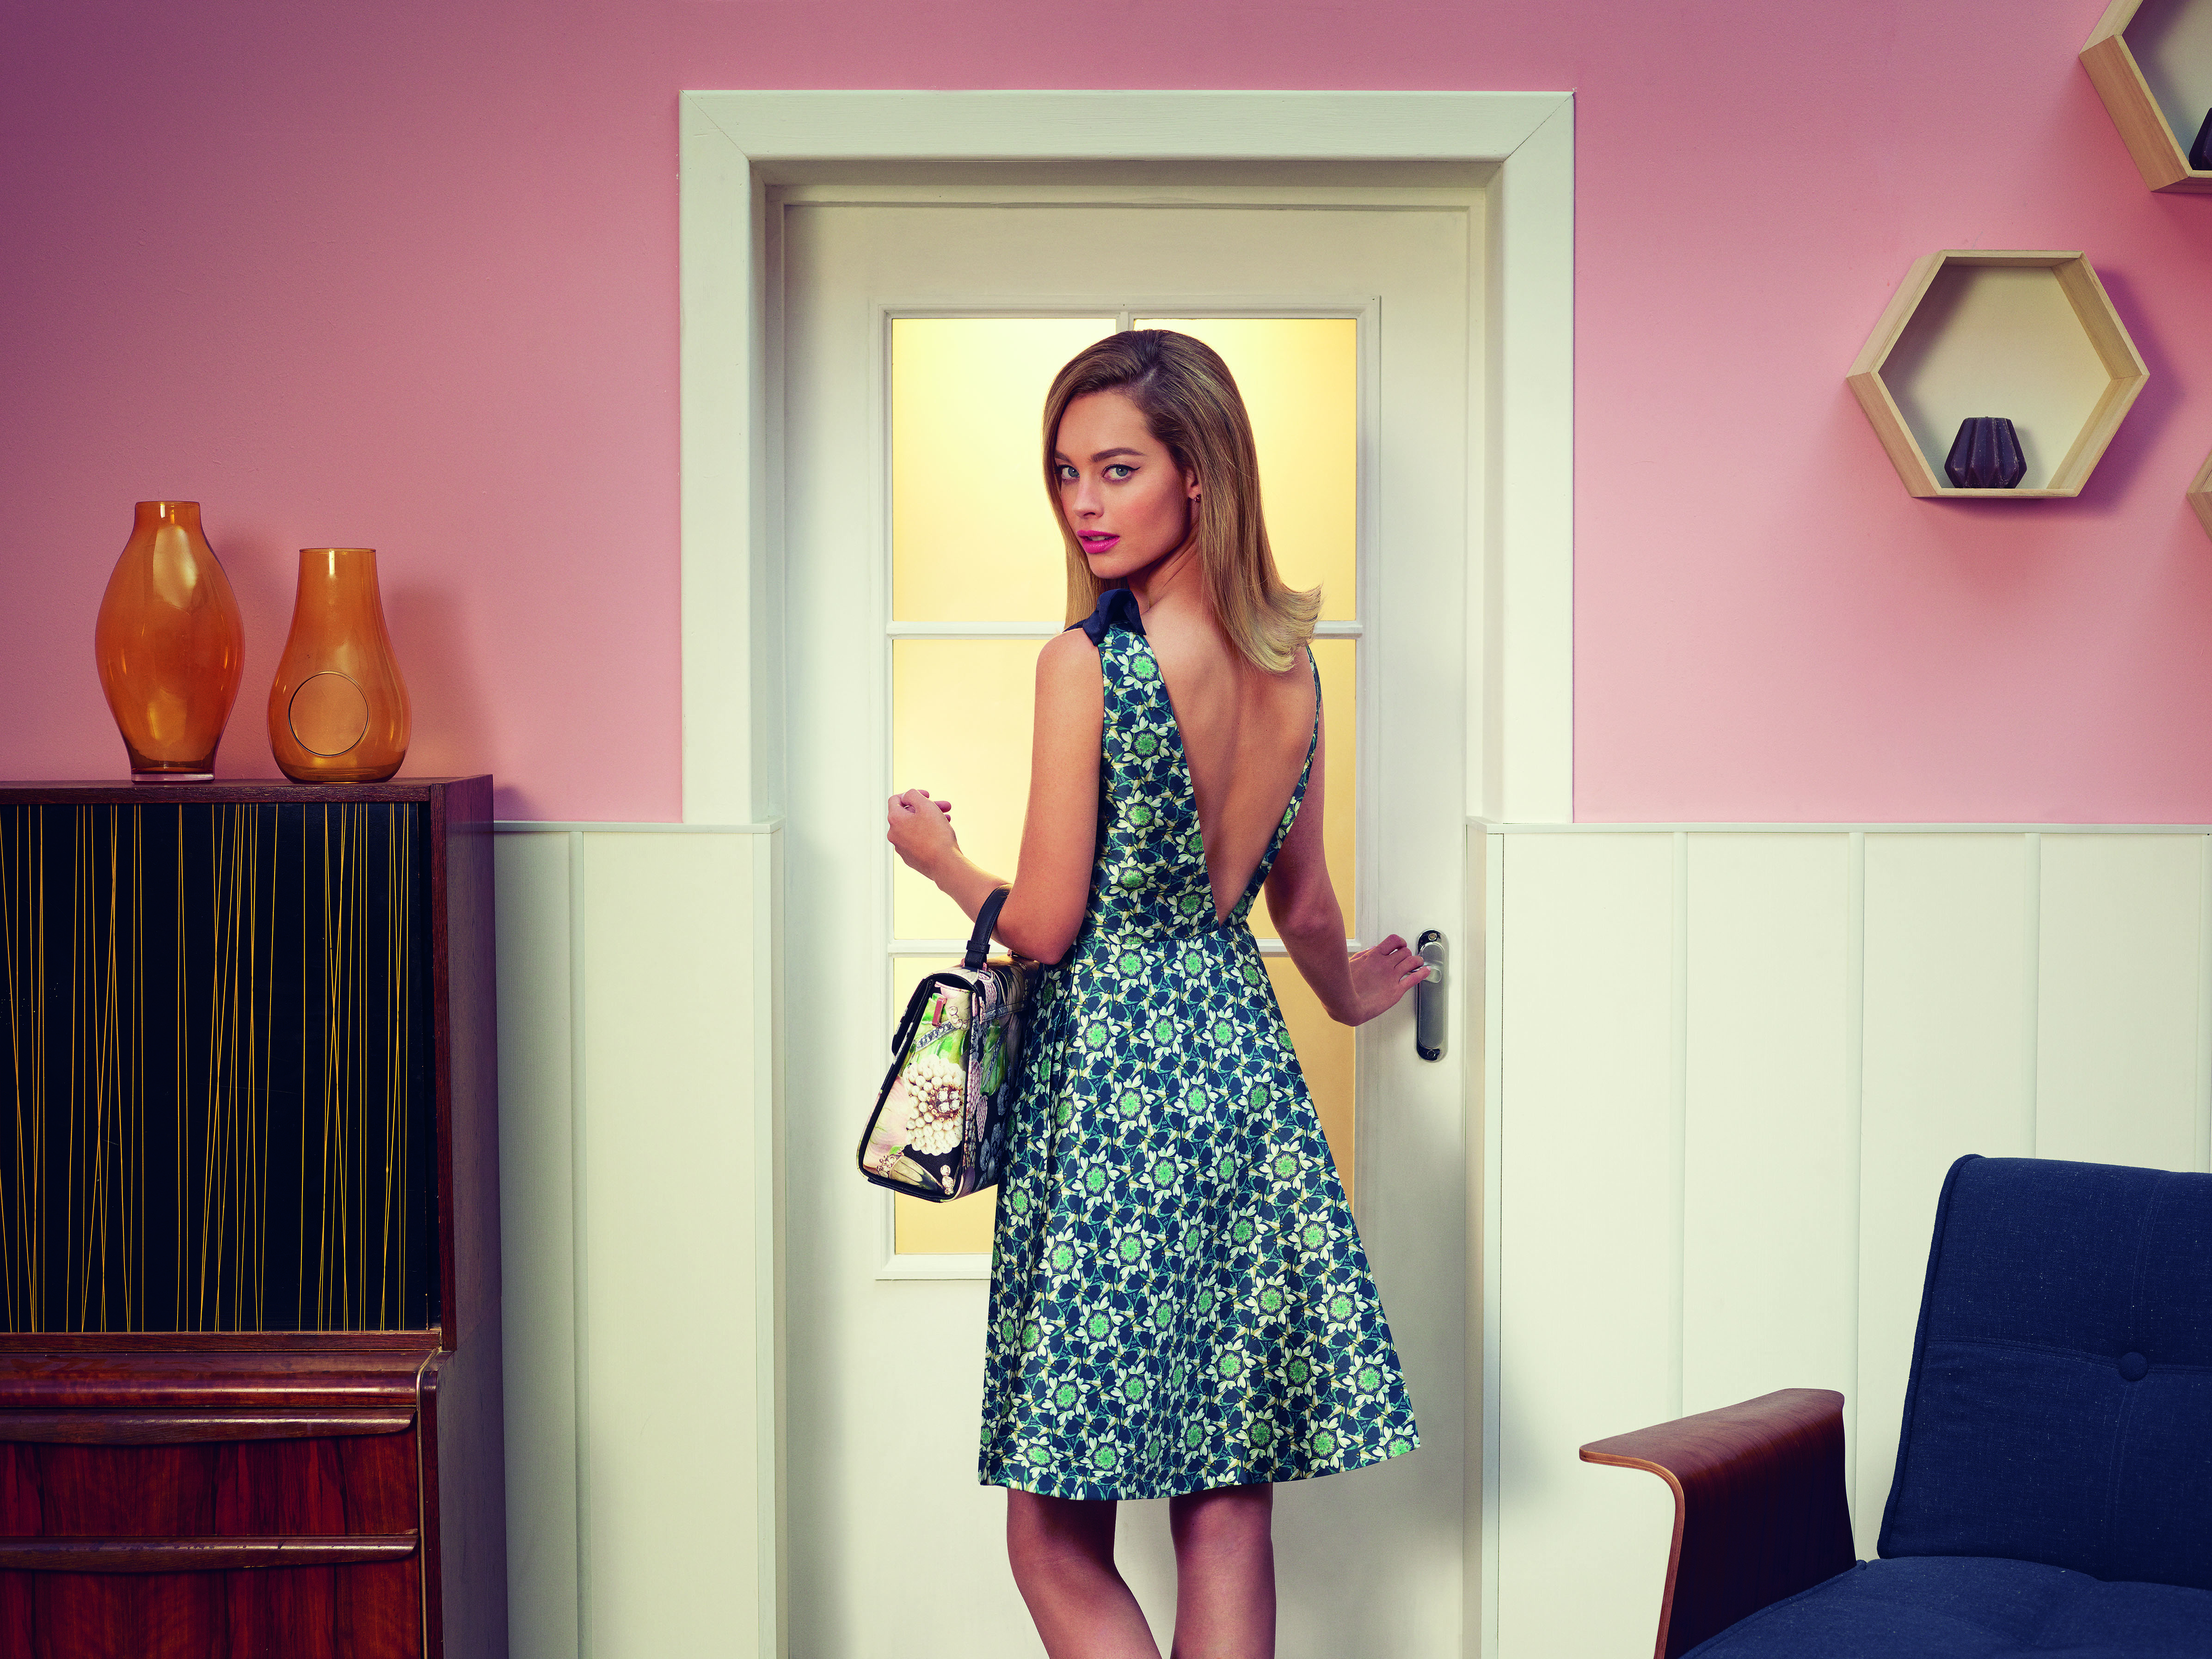 Ted Baker SS 2017 Ad Campaign 11